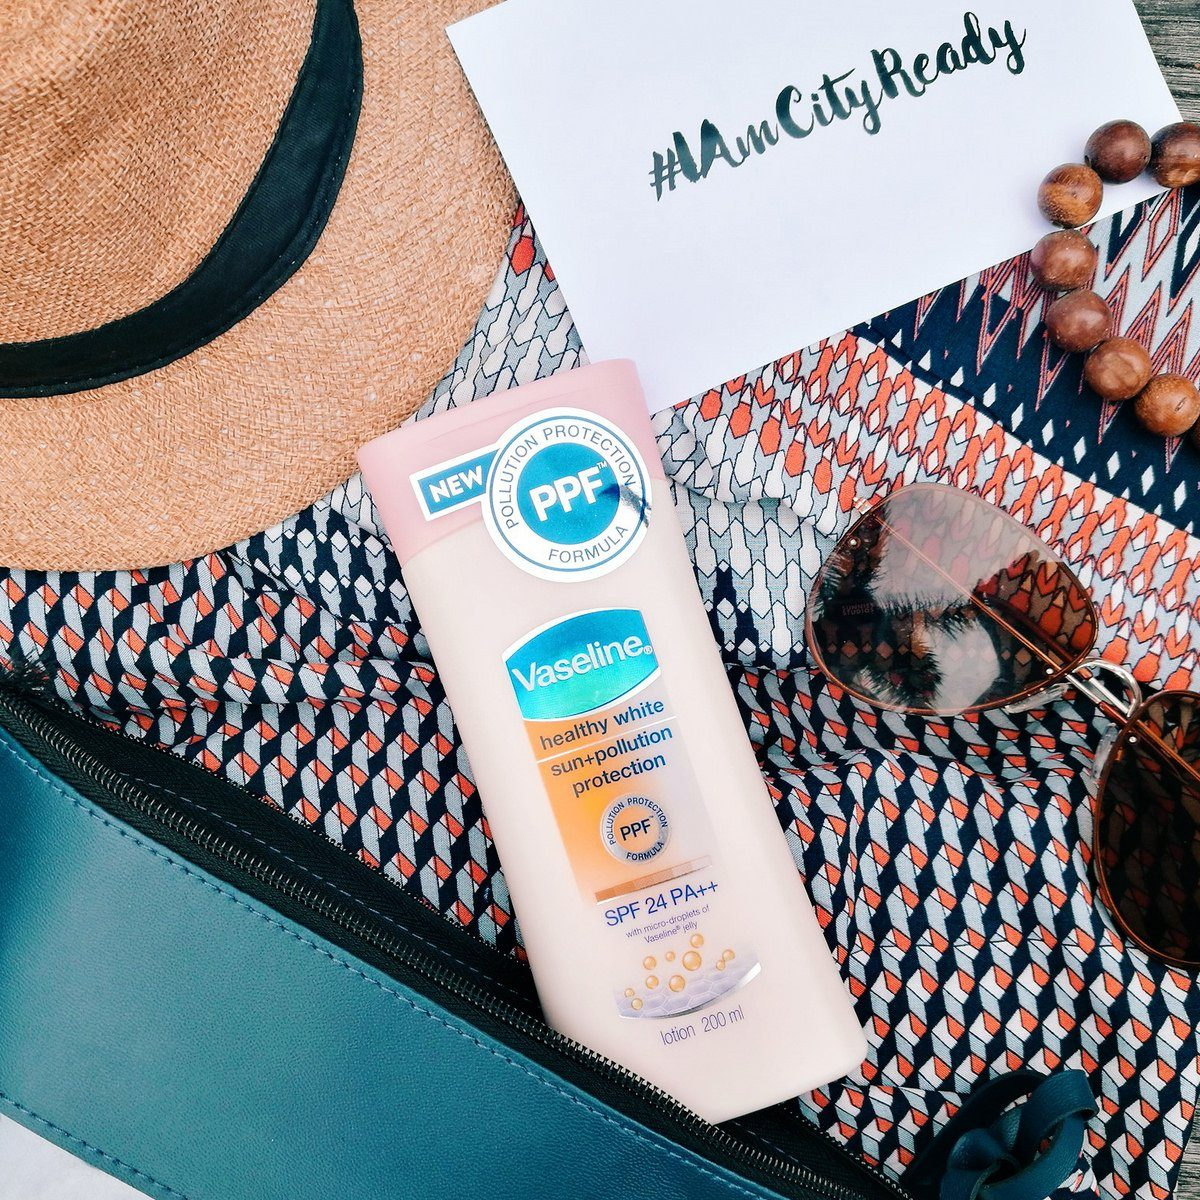 kem dưỡng thể Vaseline anti-pollution 3-in-1 Healthy White Sun and Pollution Protection SPF 24 PA++